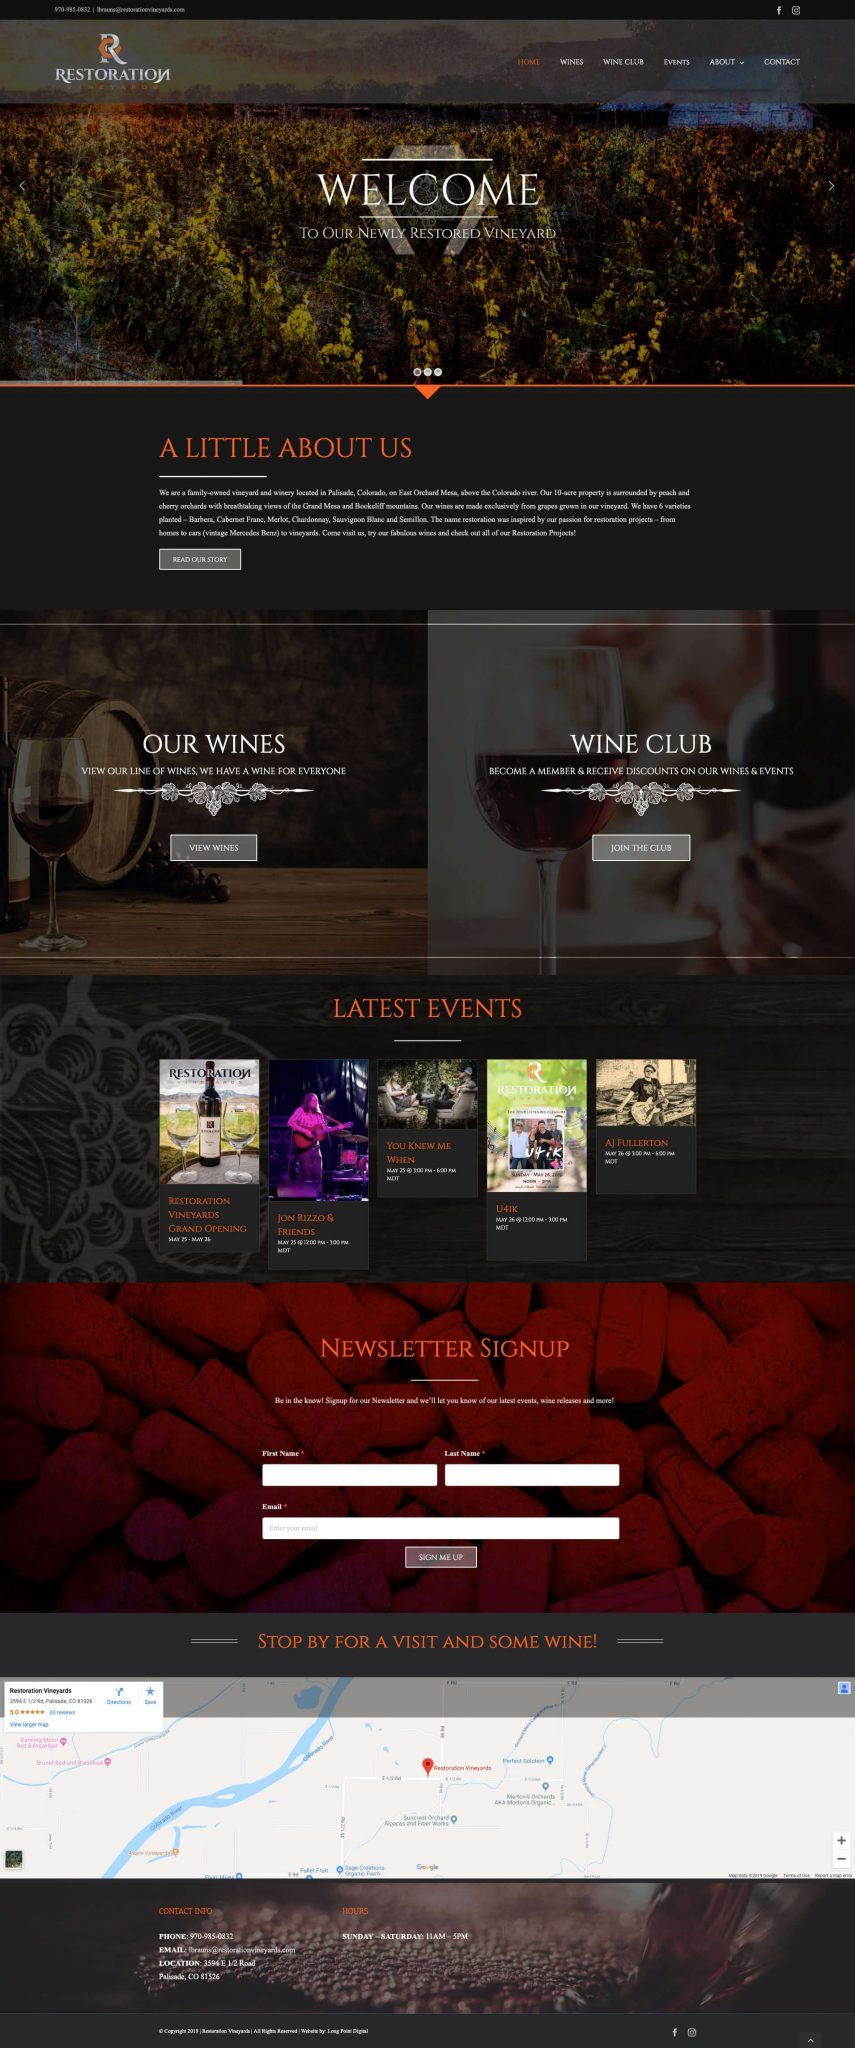 Restoration Vineyards website